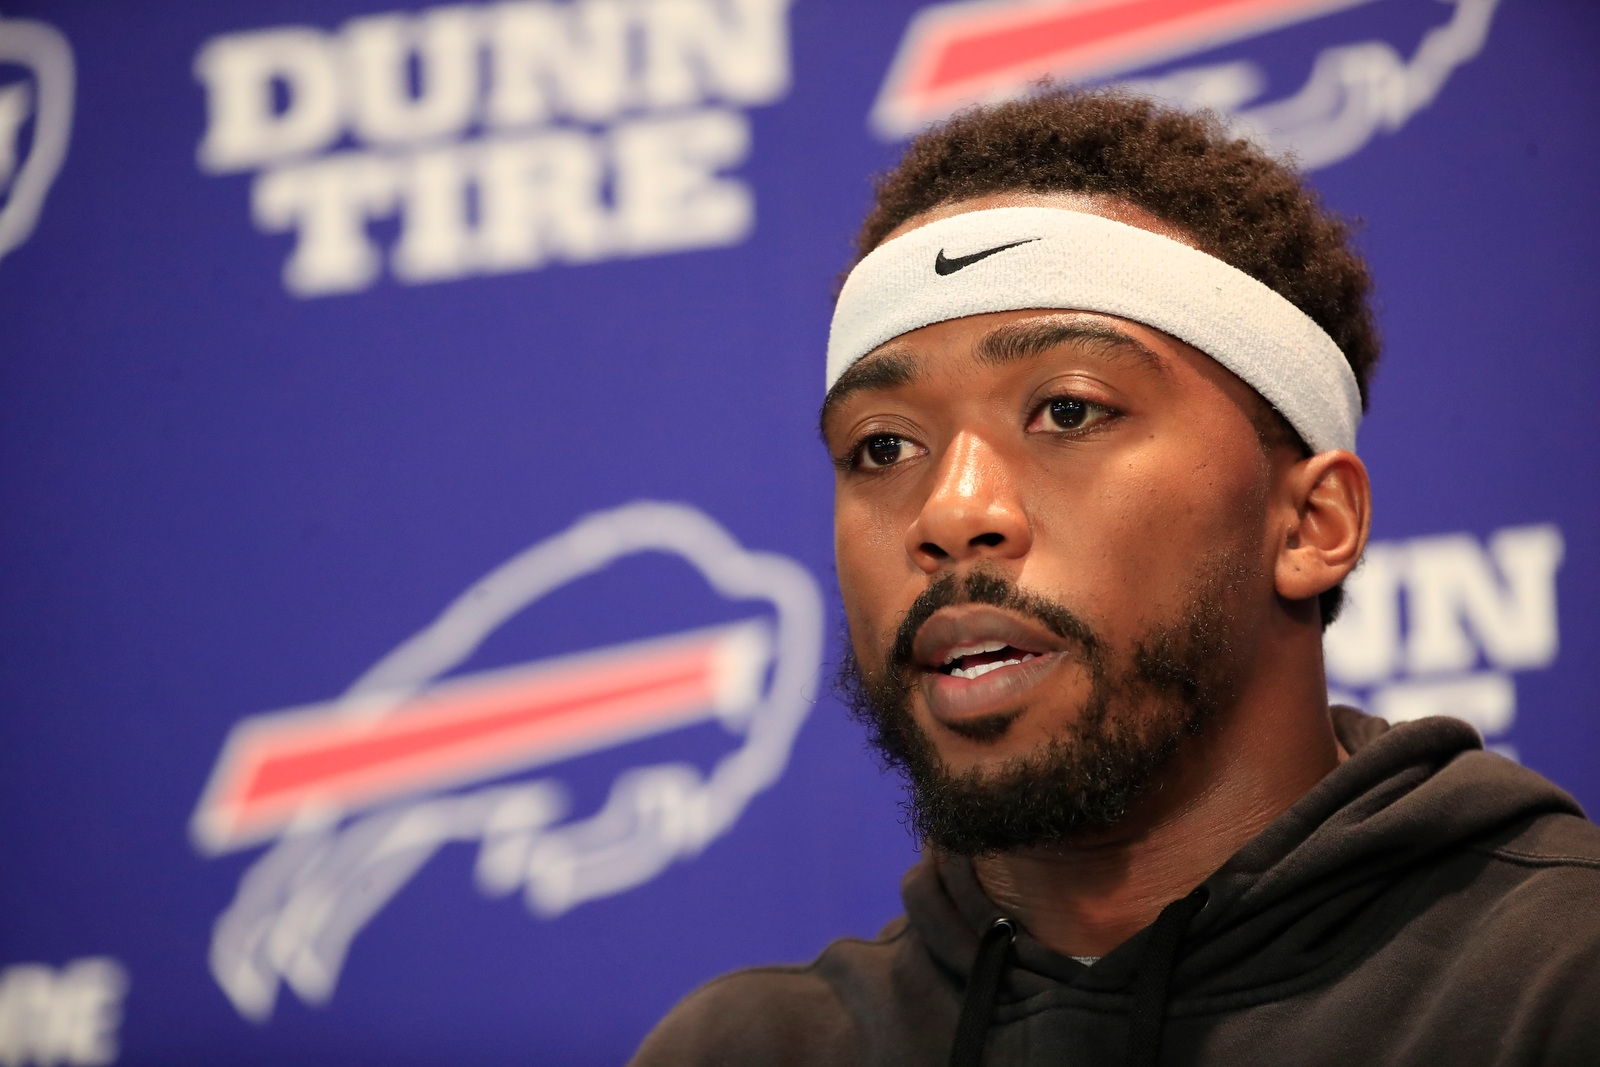 Buffalo Bills quarterback Tyrod Taylor speaks to the media at the AdPro training facility on Tuesday, Oct. 31, 2017.